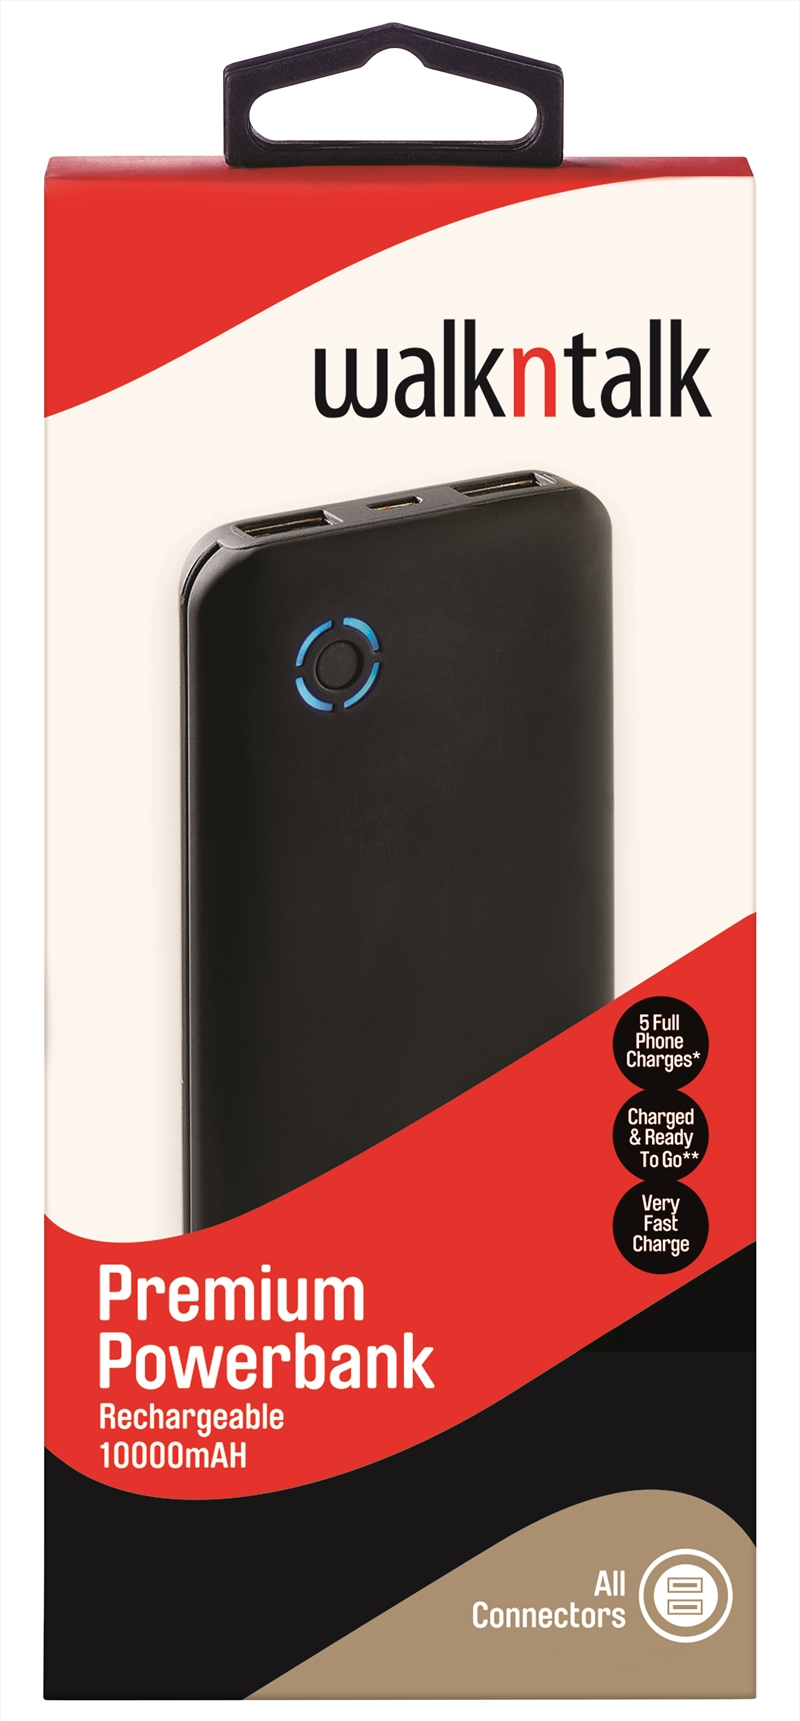 Walkntalk - 10000mAH Premium Powerbank | Accessories